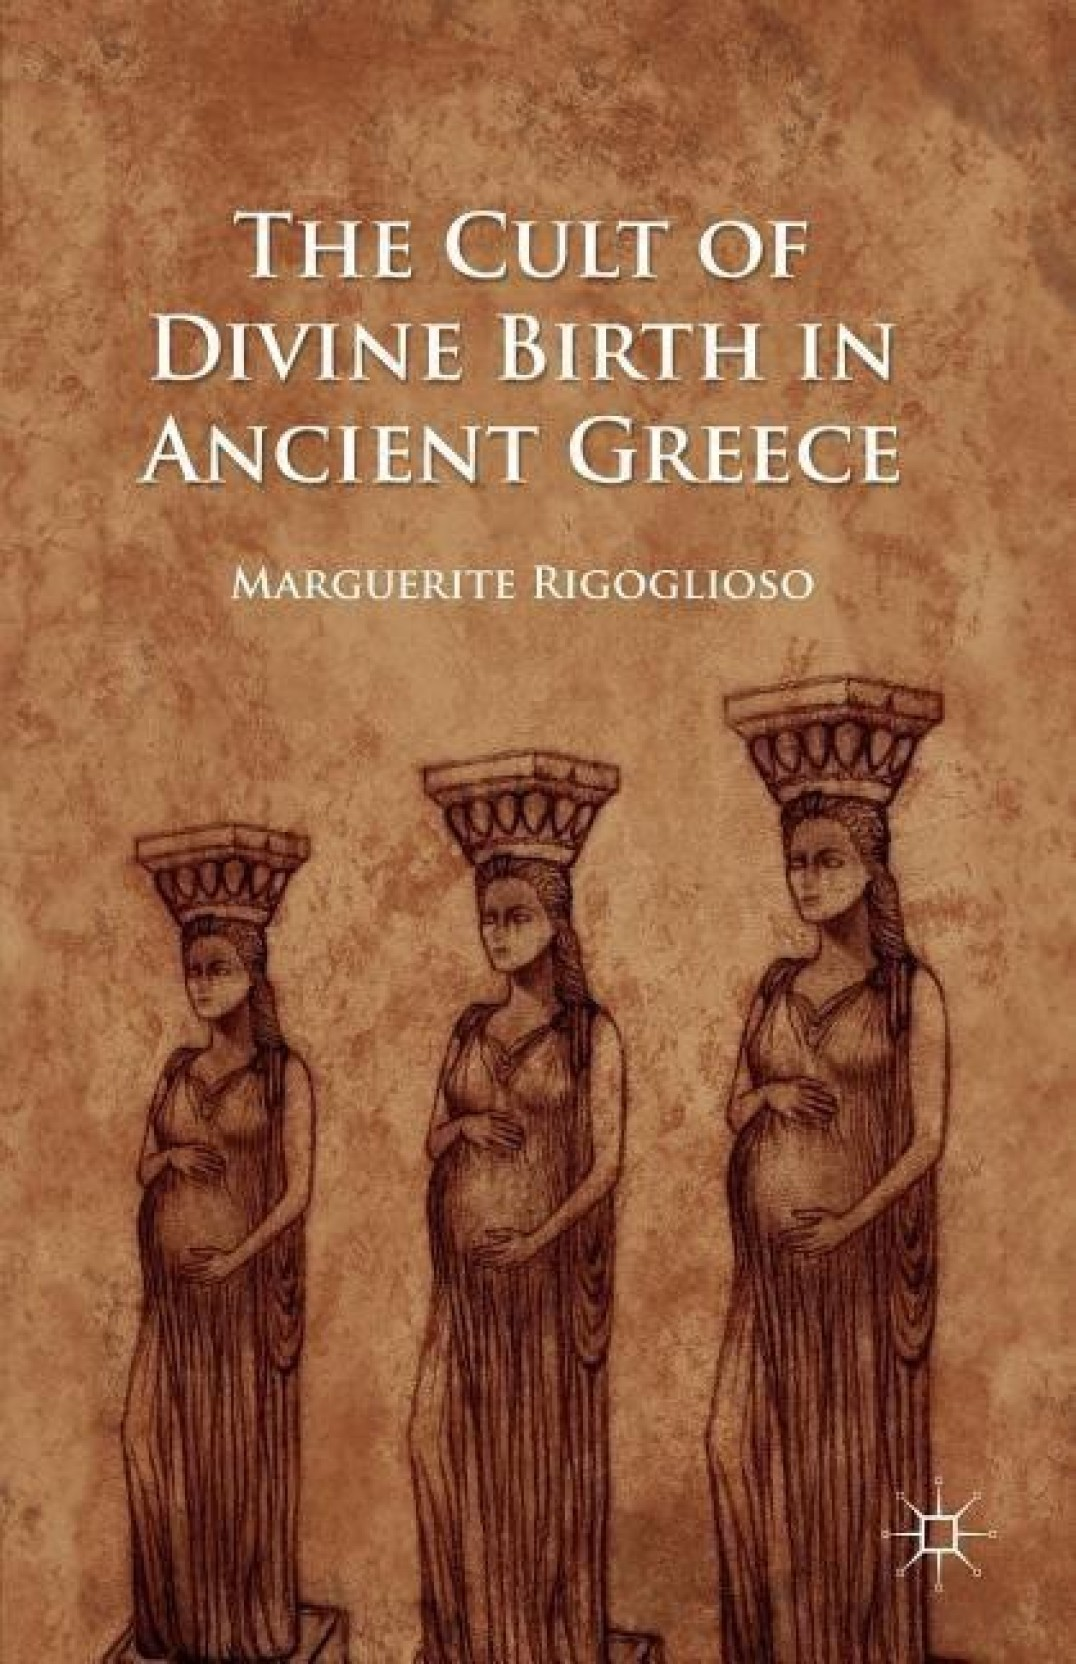 The Cult of Divine Birth in Ancient Greece. ADD TO CART